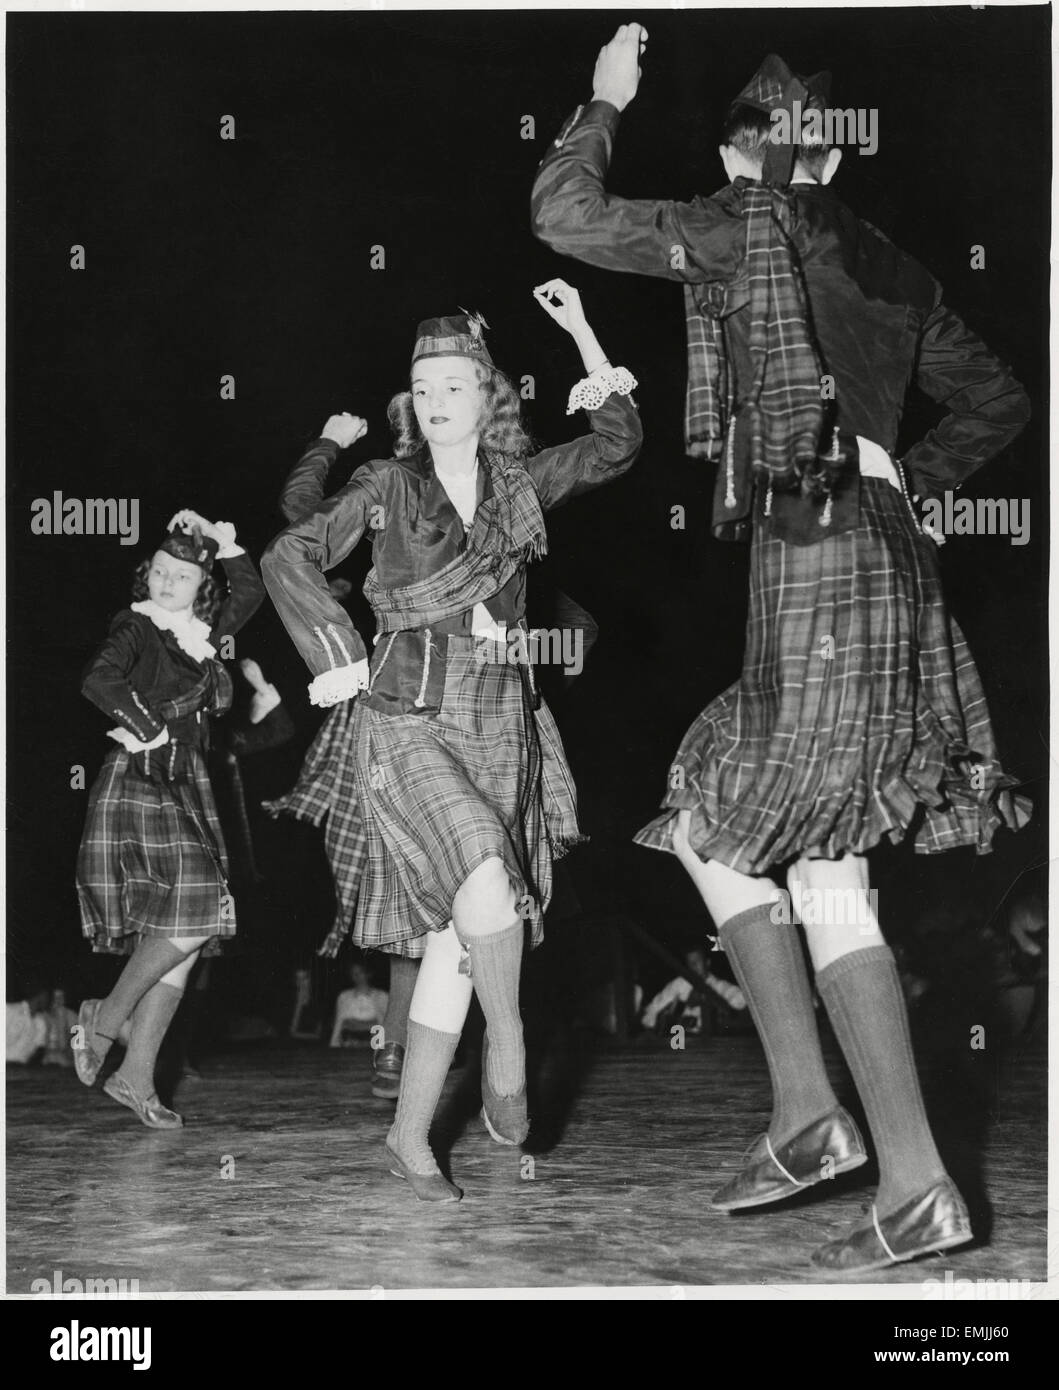 High School Students From Fayetteville, NC, Performing Highland Fling at Carolina Folk Festival, North Carolina, - Stock Image